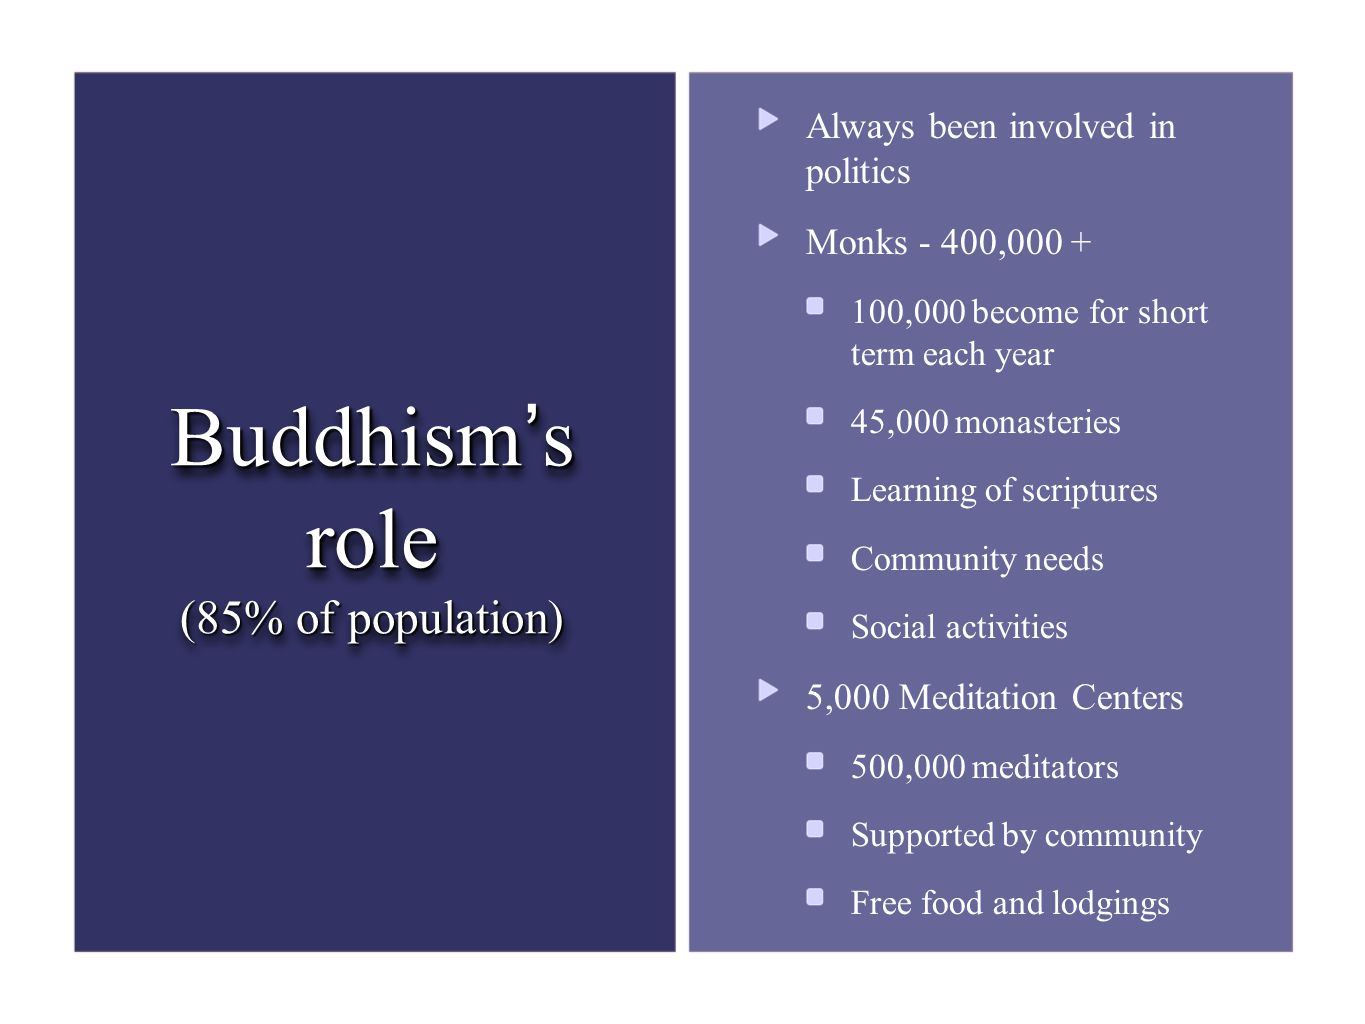 Buddhism's role (85% of population) Always been involved in politics Monks - 400,000 + 100,000 become for short term each year 45,000 monasteries Learning of scriptures Community needs Social activities 5,000 Meditation Centers 500,000 meditators Supported by community Free food and lodgings